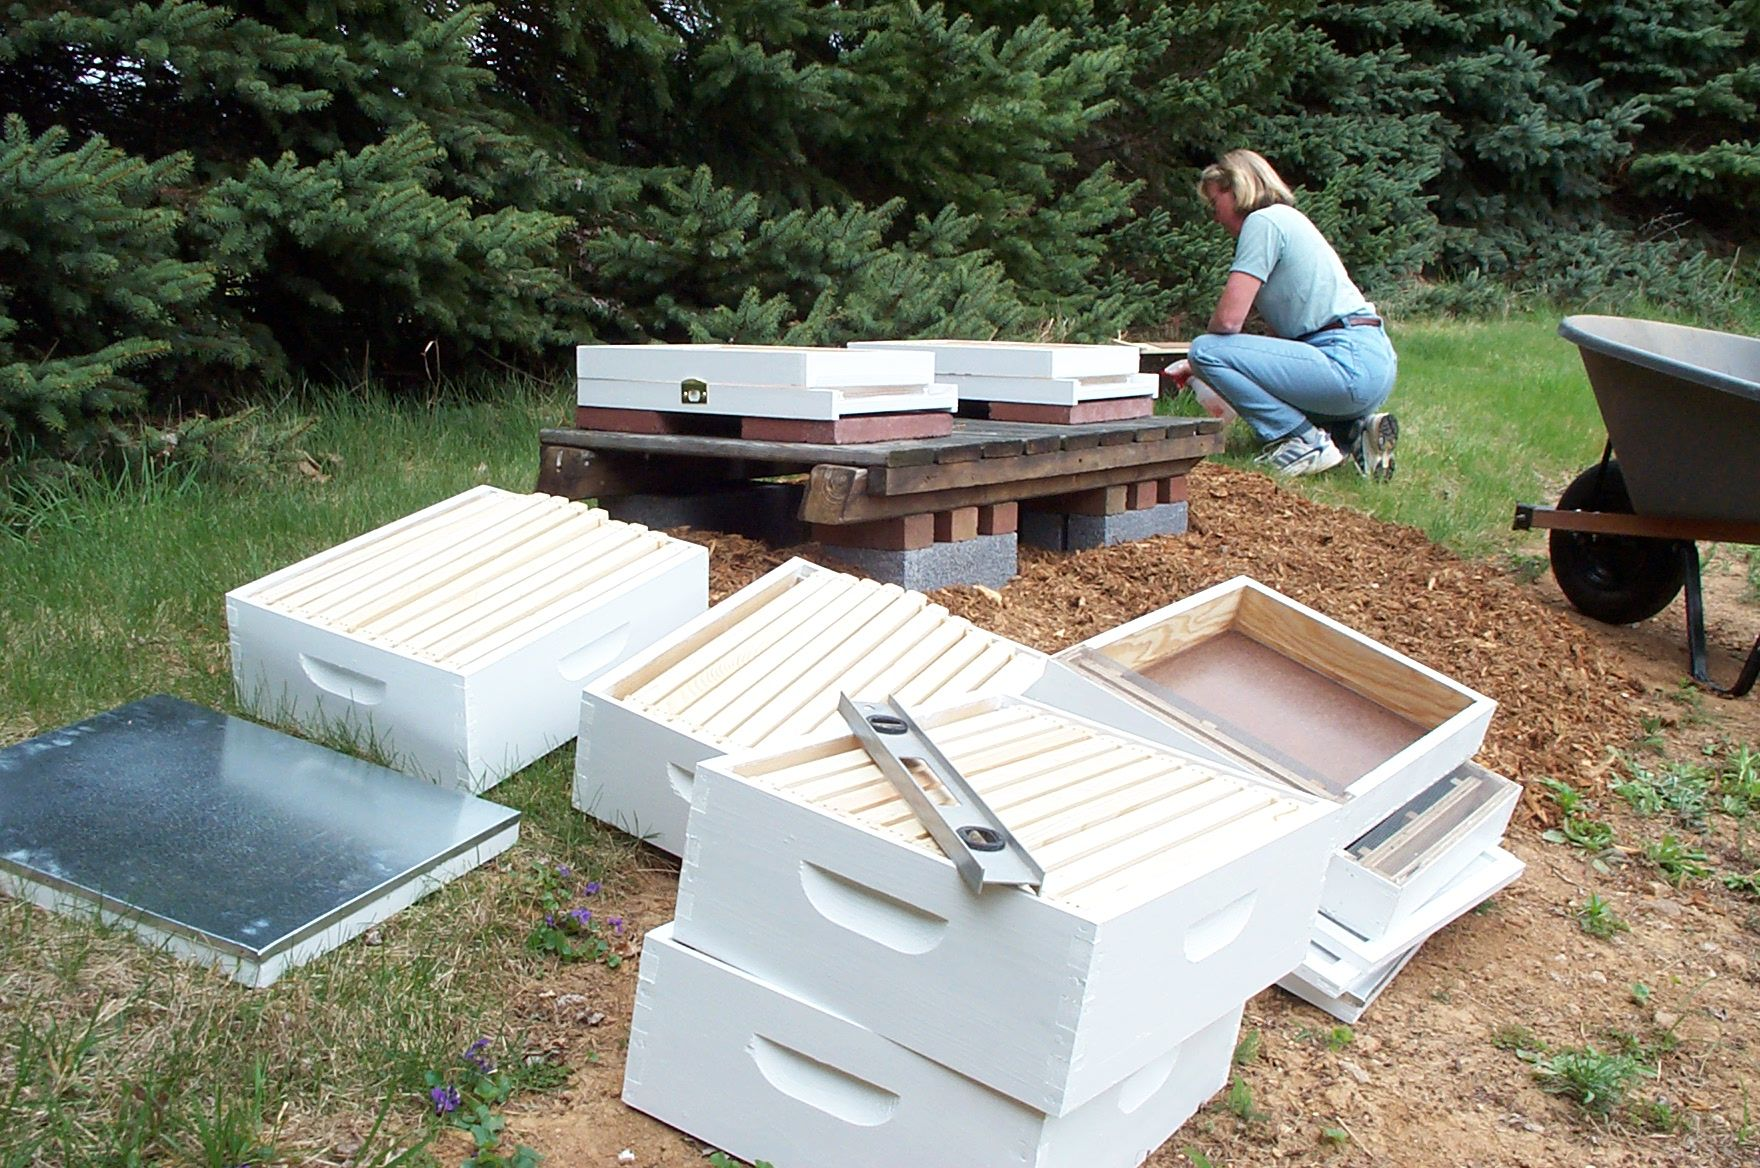 Setting up hives